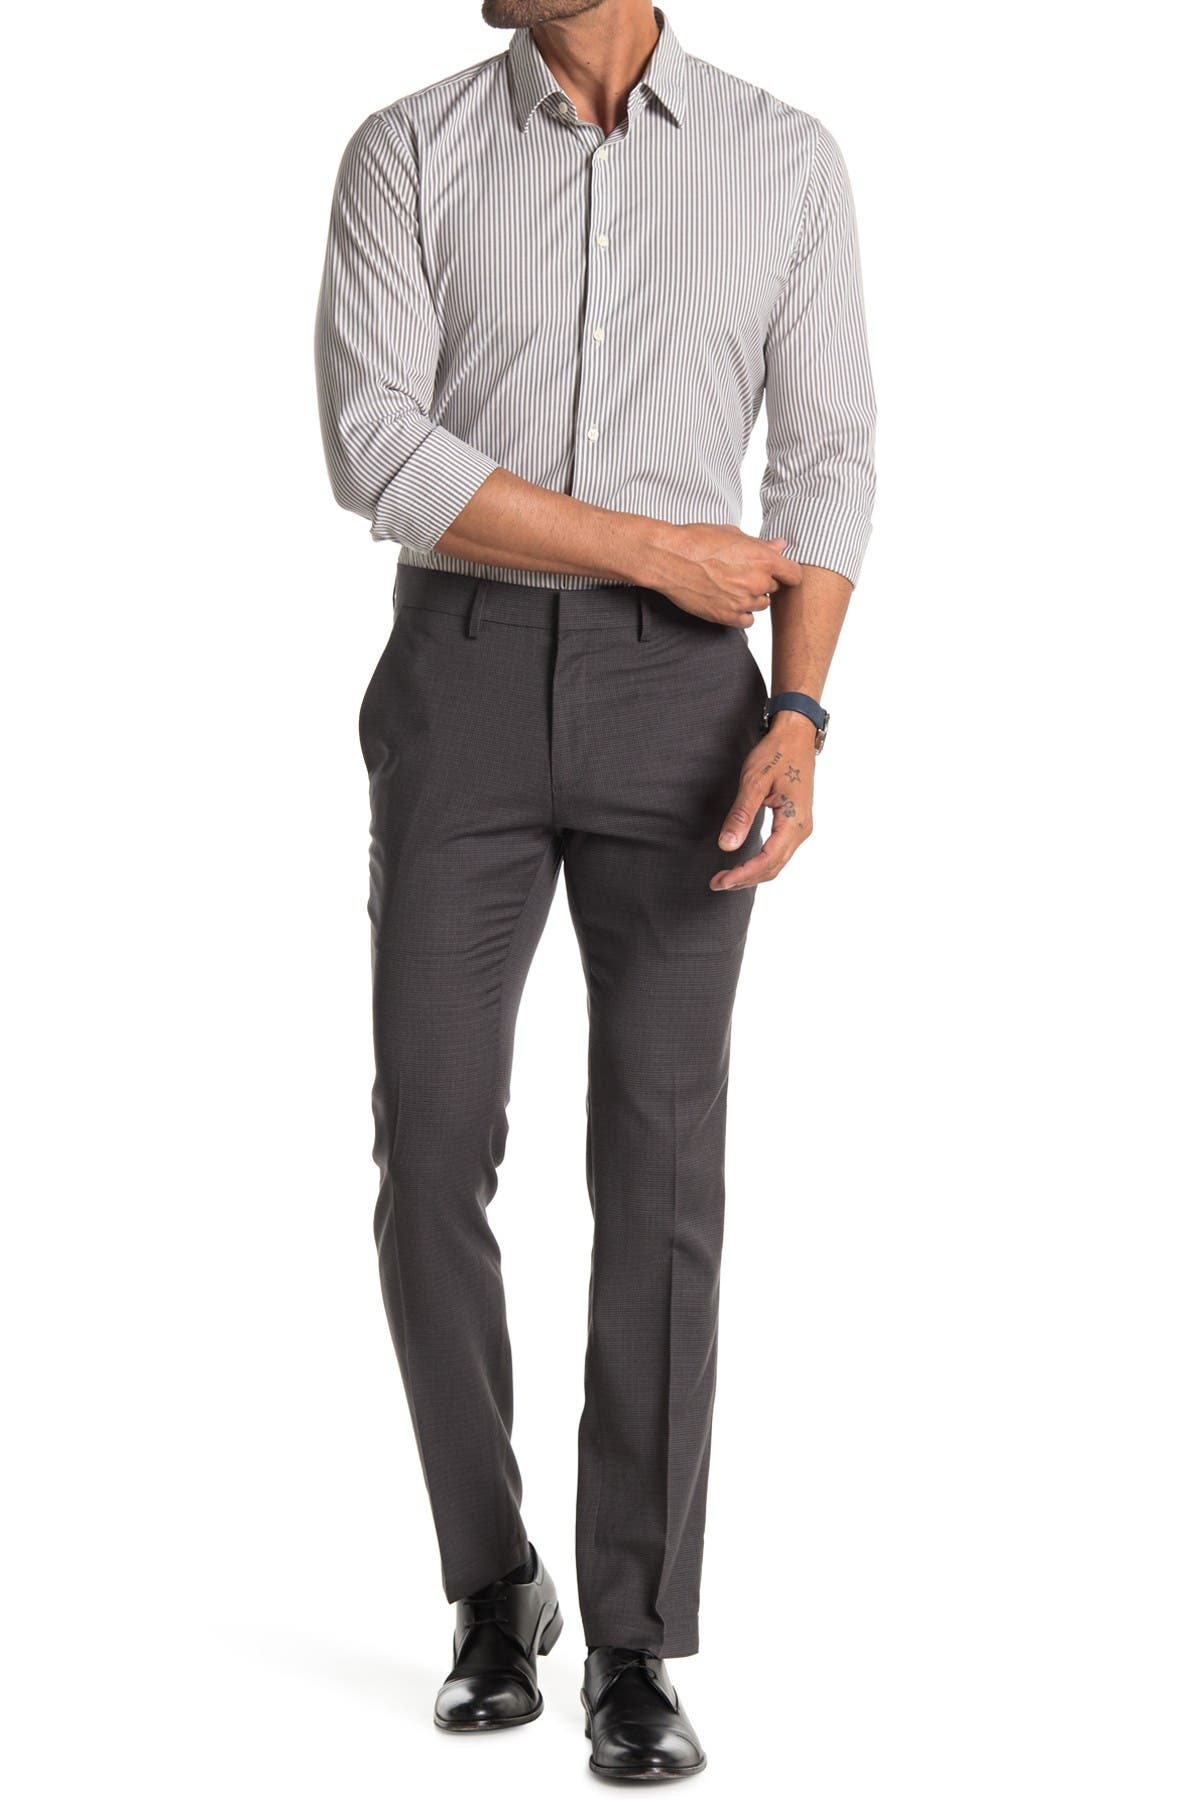 Image of Kenneth Cole Reaction Micro Check Houndstooth Skinny Dress Pant